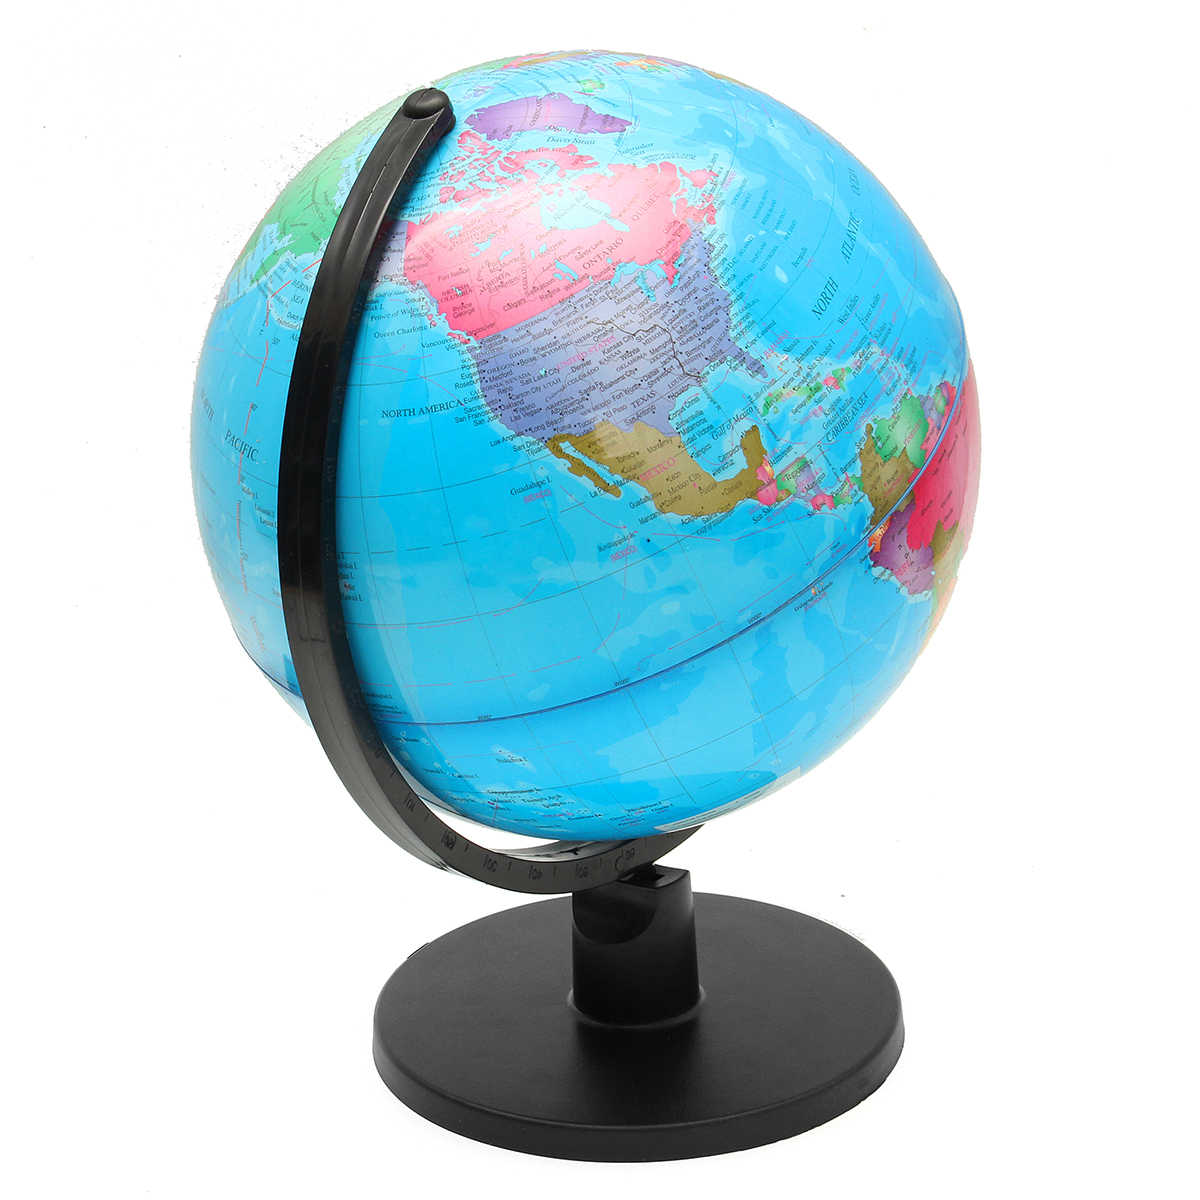 Map 20cm Earth Globe World Map Geography Educational Toy For Desktop Decoration Home Office Aid Miniatures Kids Gift Fine Quality Office & School Supplies